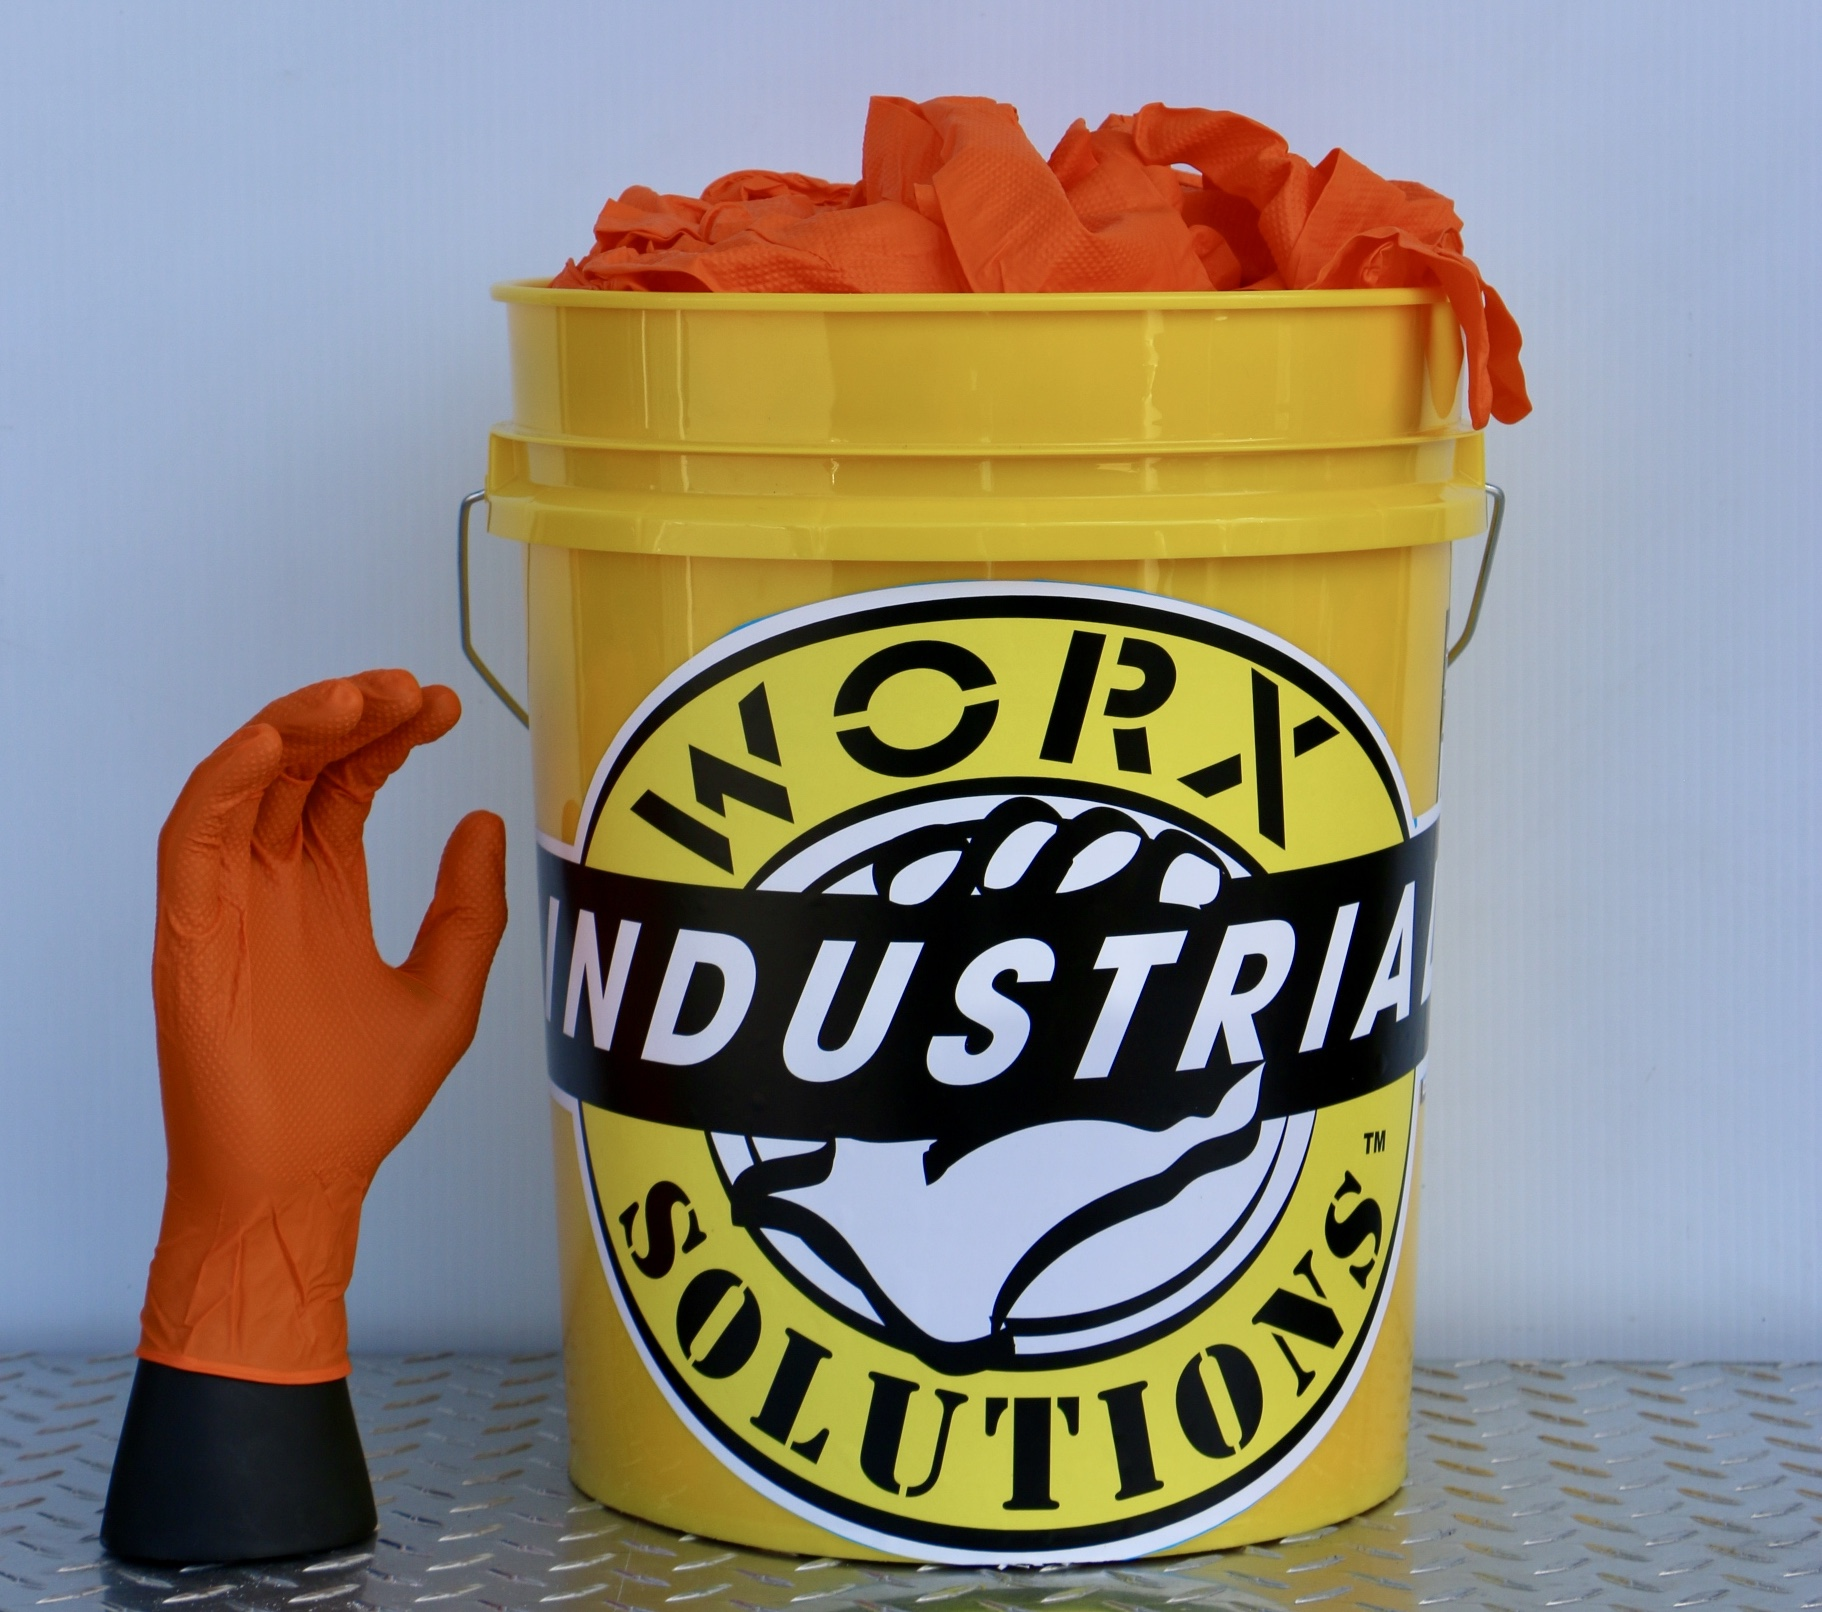 ORANGE NITRILE 7MIL THICK GLOVES 500pc BUCKET / (TEMPORARILY SOLD OUT UNTIL 4/25/2020)